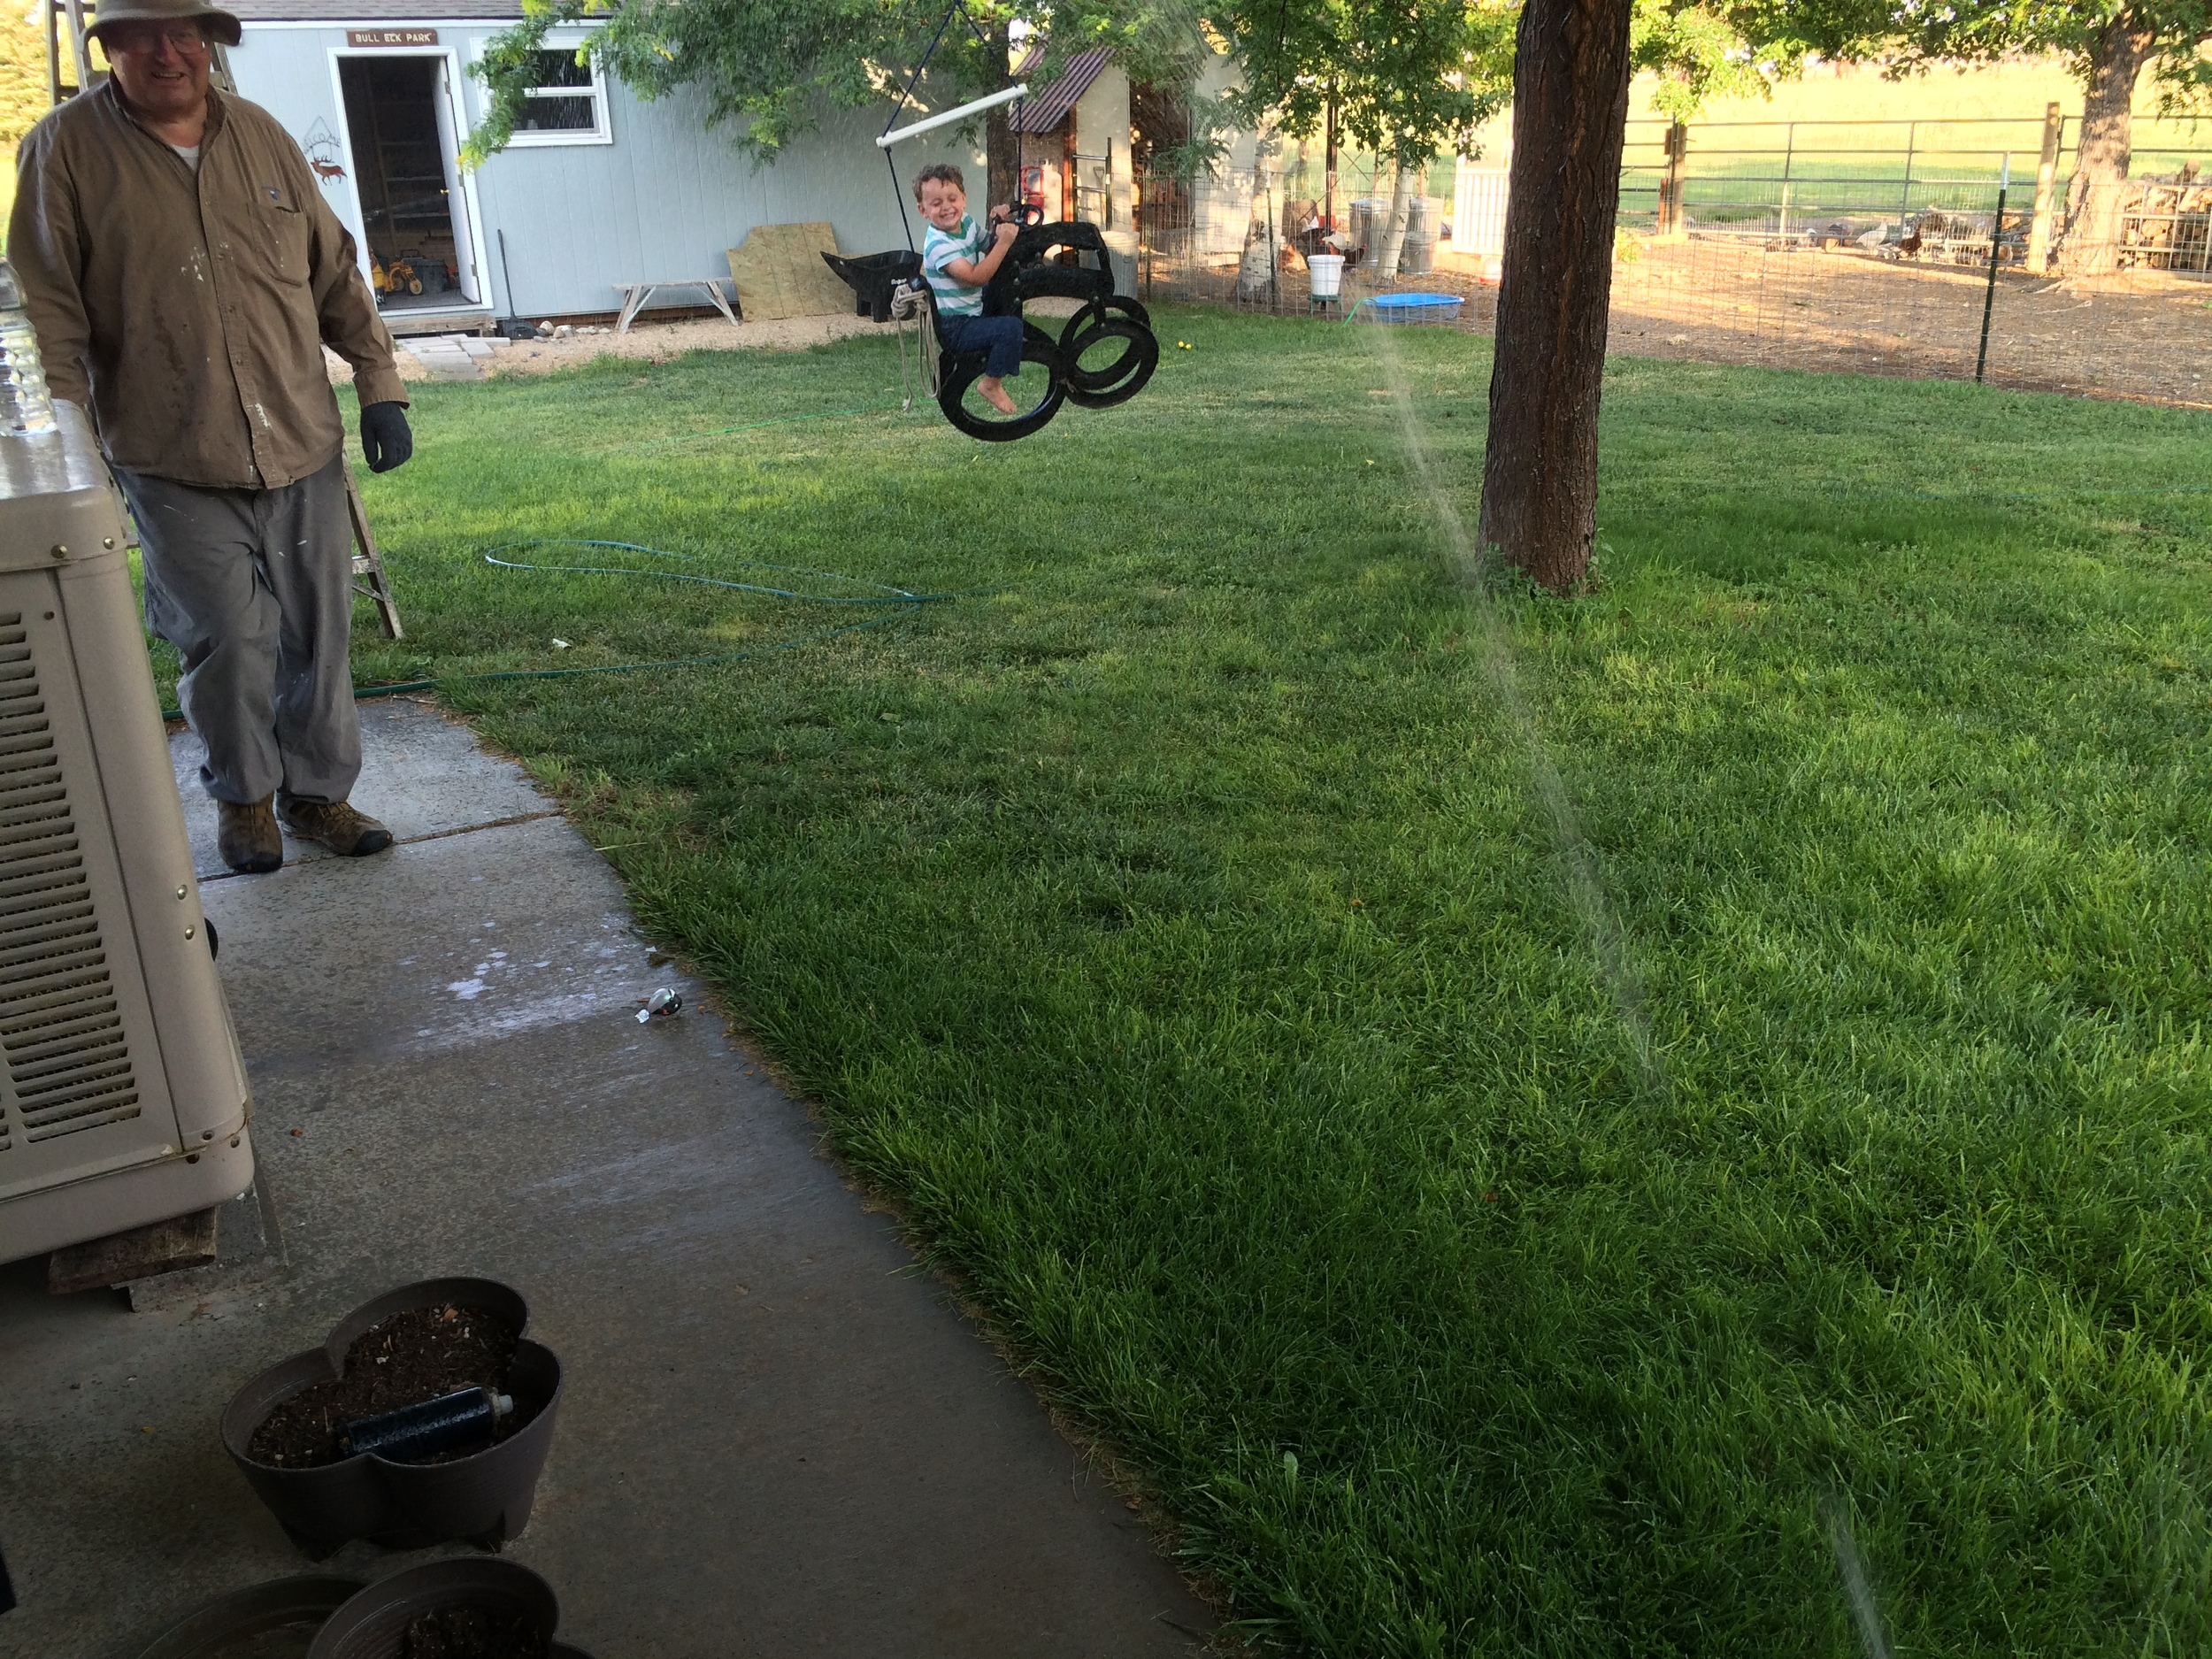 Grandpa moved the swing and adjusted the sprinkler to spray Asher as he swung. Asher was a very good sport!